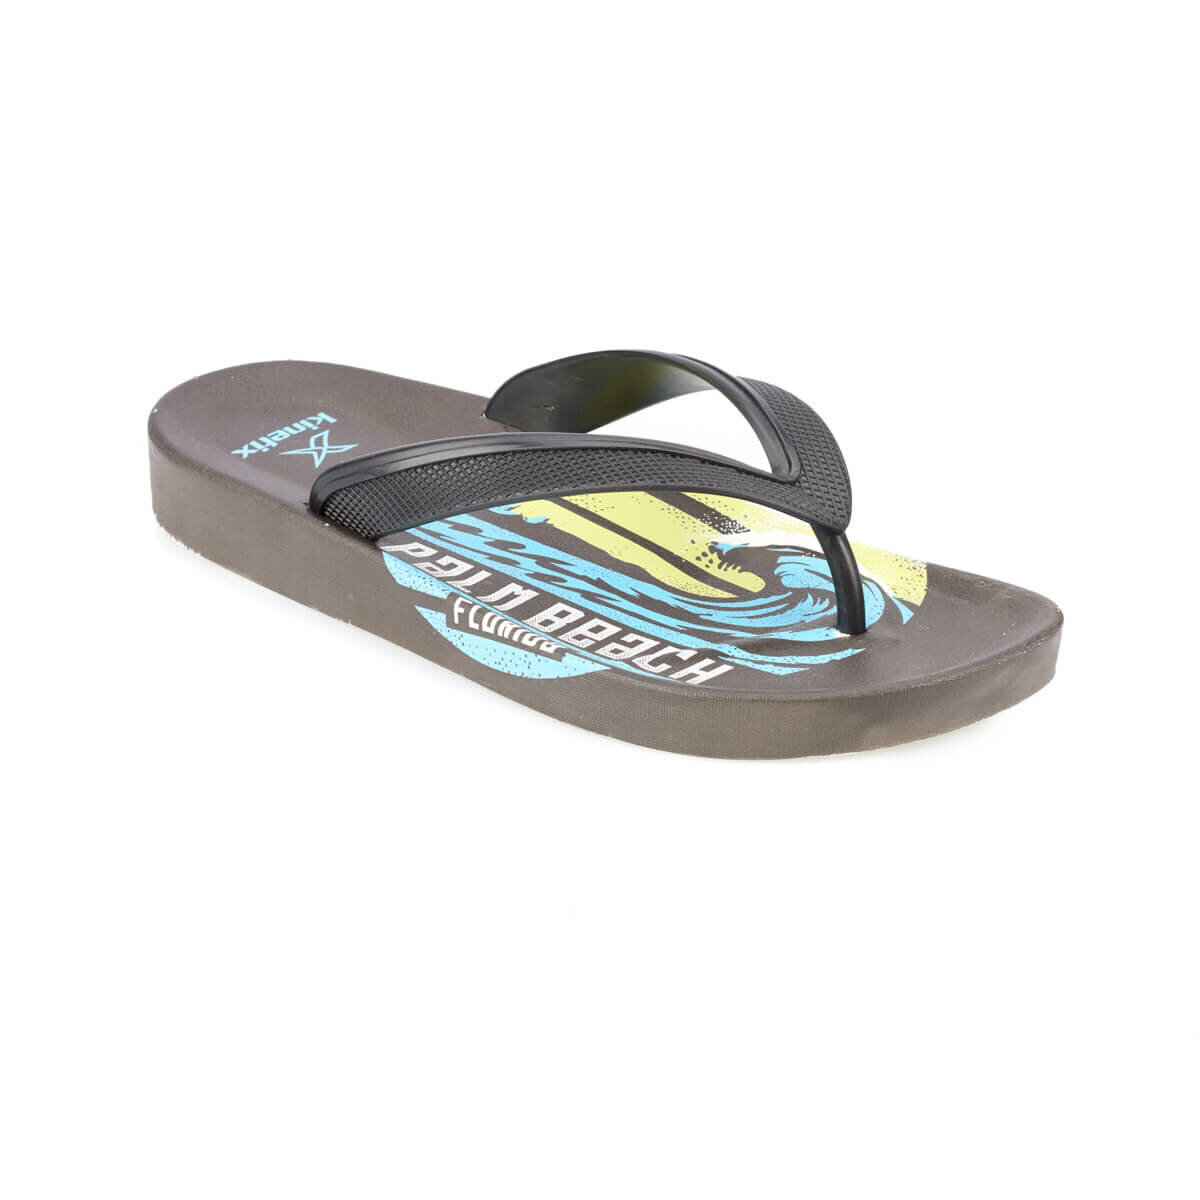 FLO PALM Black Male Slippers KINETIX